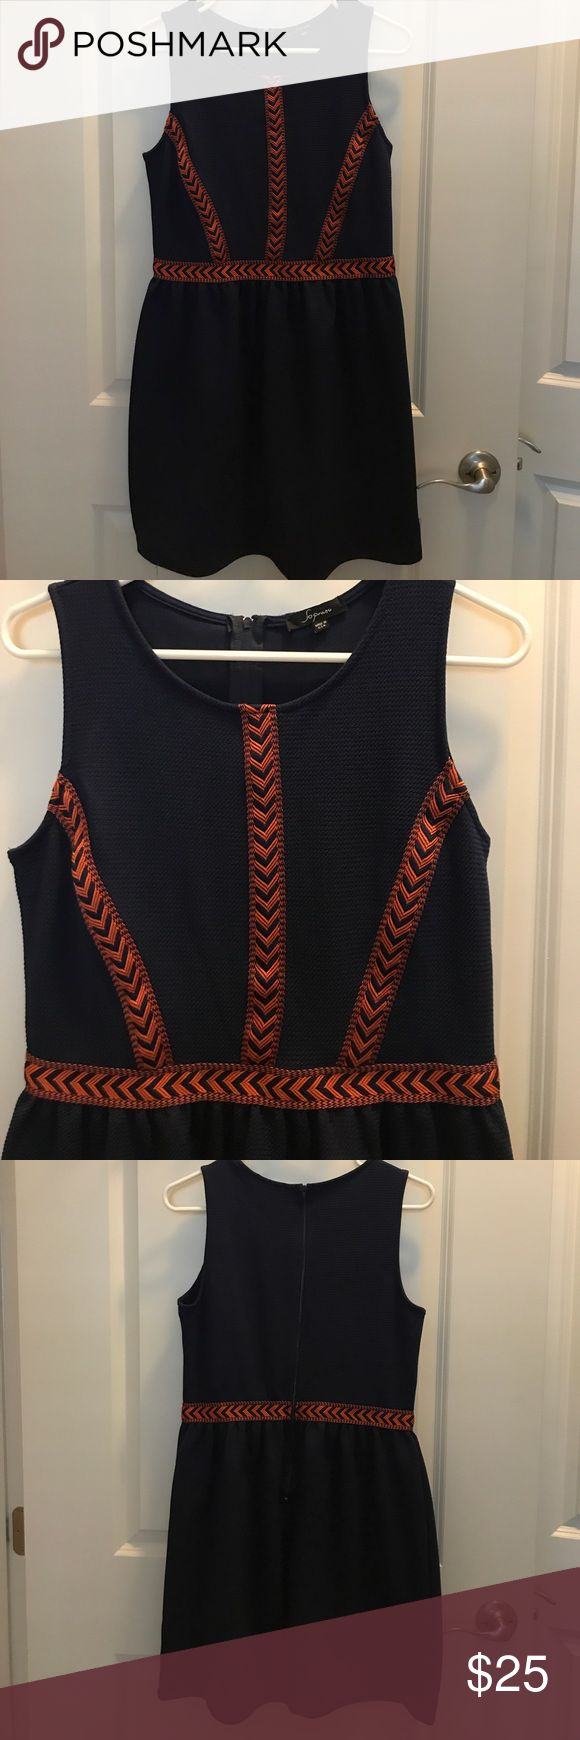 """A Line Navy Dress with Orange Accents A line textures navy dress with orange chevron detail. Dress is polyester so it breathes nicely.  Size Large.  Bust is 36"""" but could stretch to 37"""" without tugging. Waist is 31"""" skirt length from waist to bottom hem is 19"""" Soprano Dresses"""